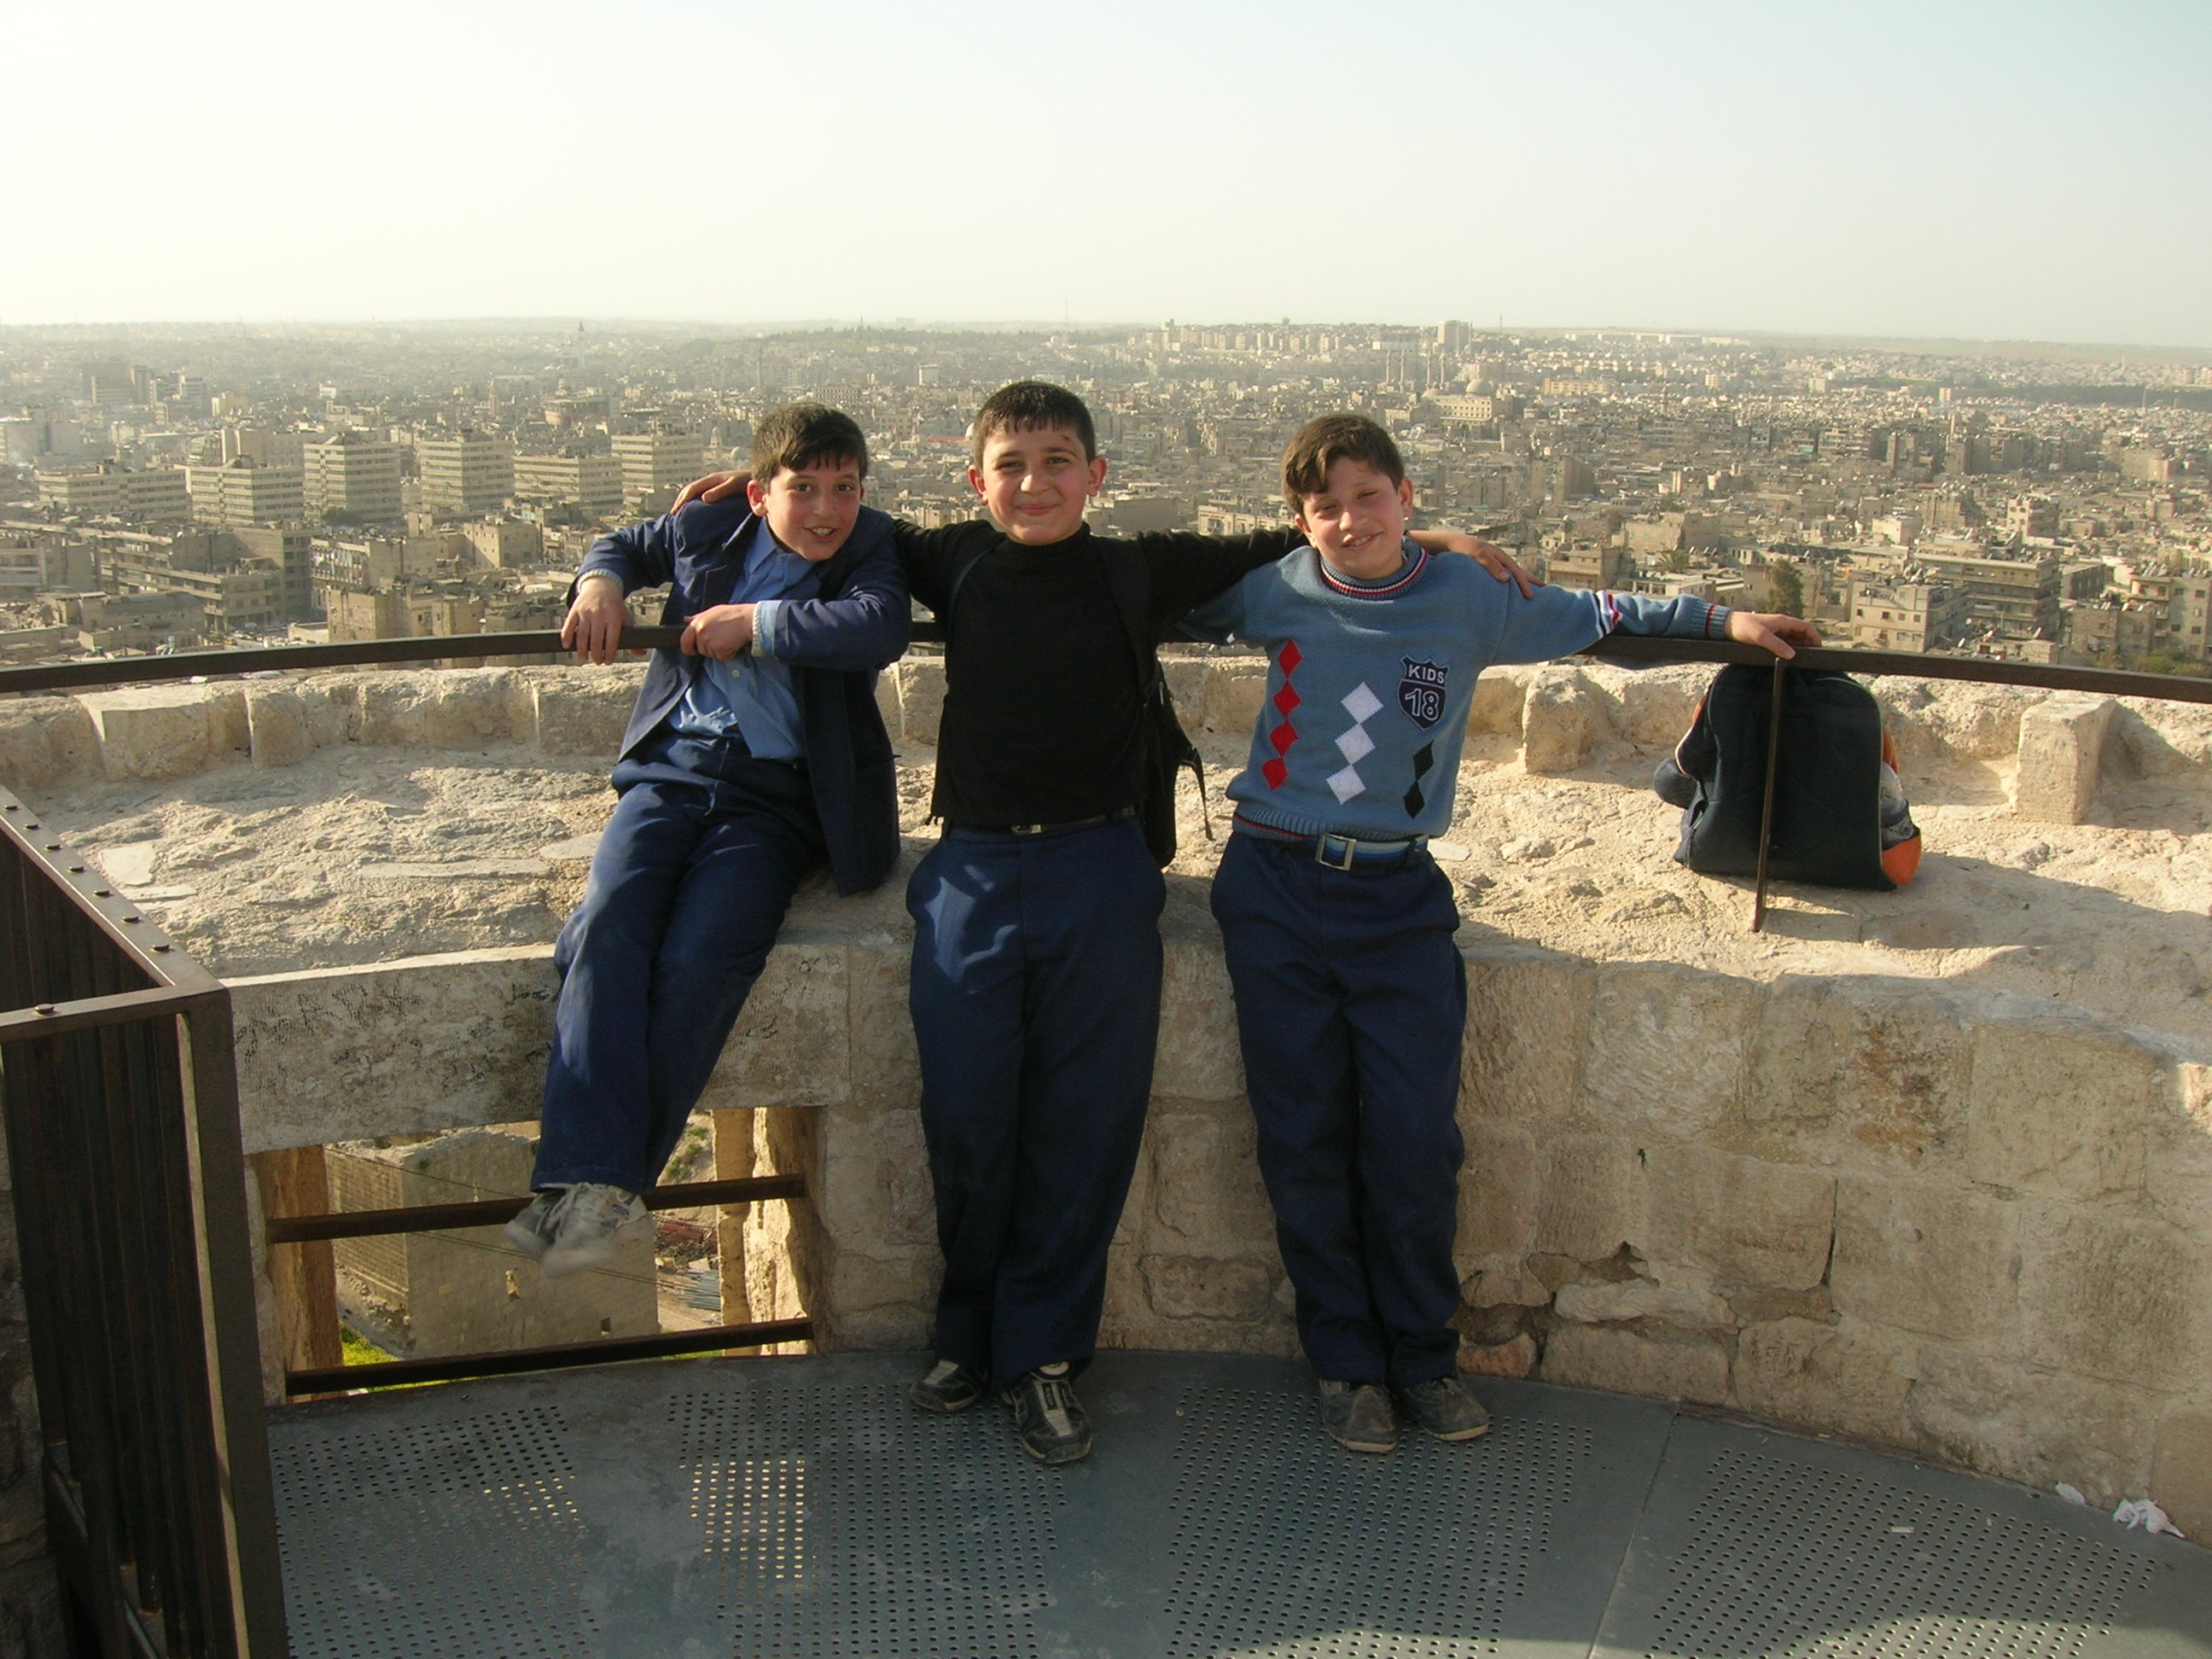 Brothers-in-Arms, Aleppo Citadel, Syria